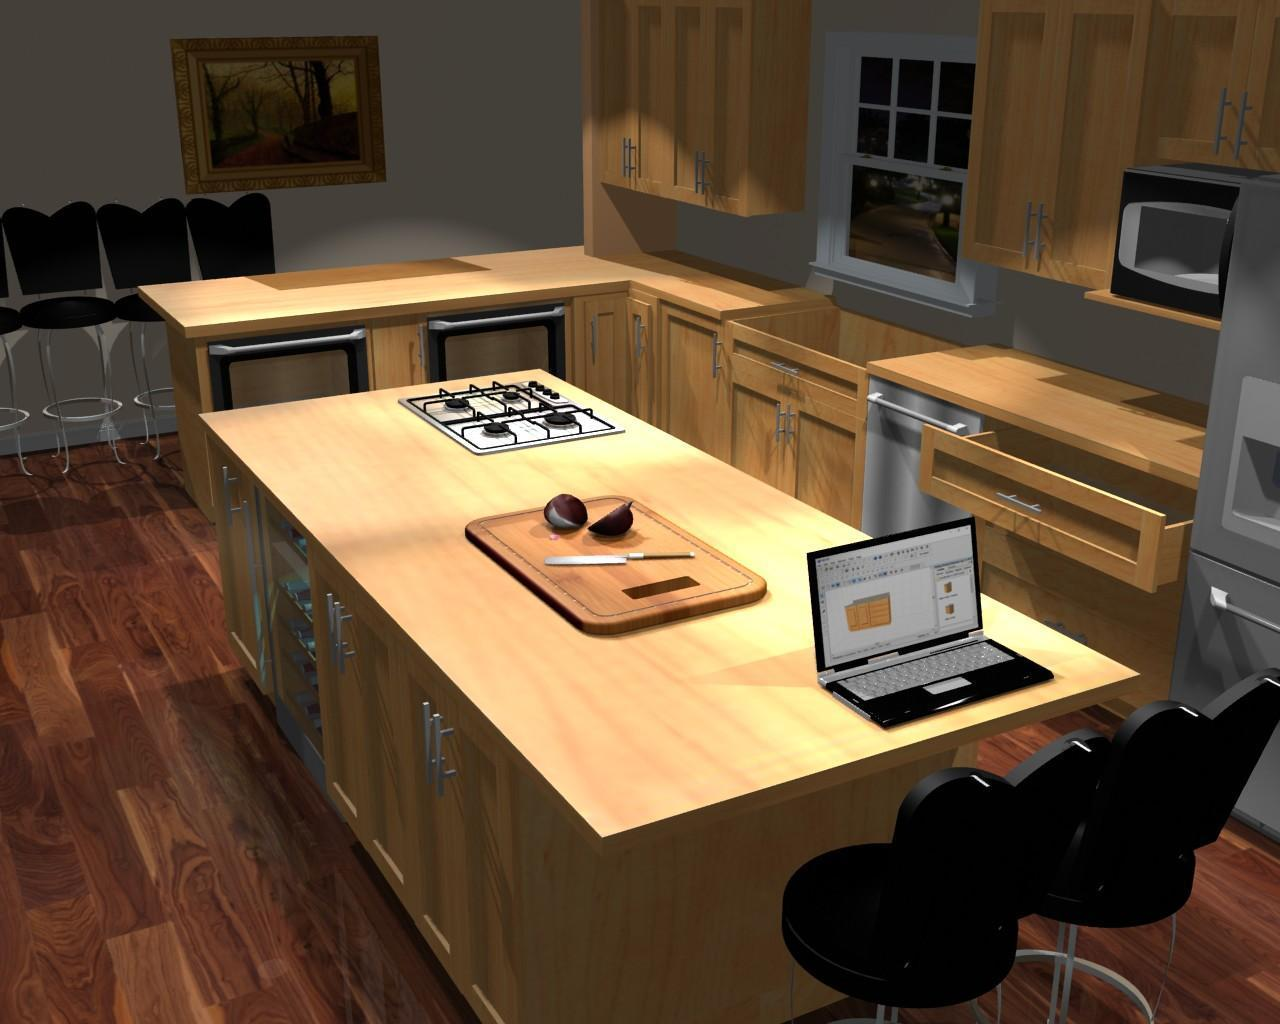 pro kitchen design software industries kitchen design software 4419